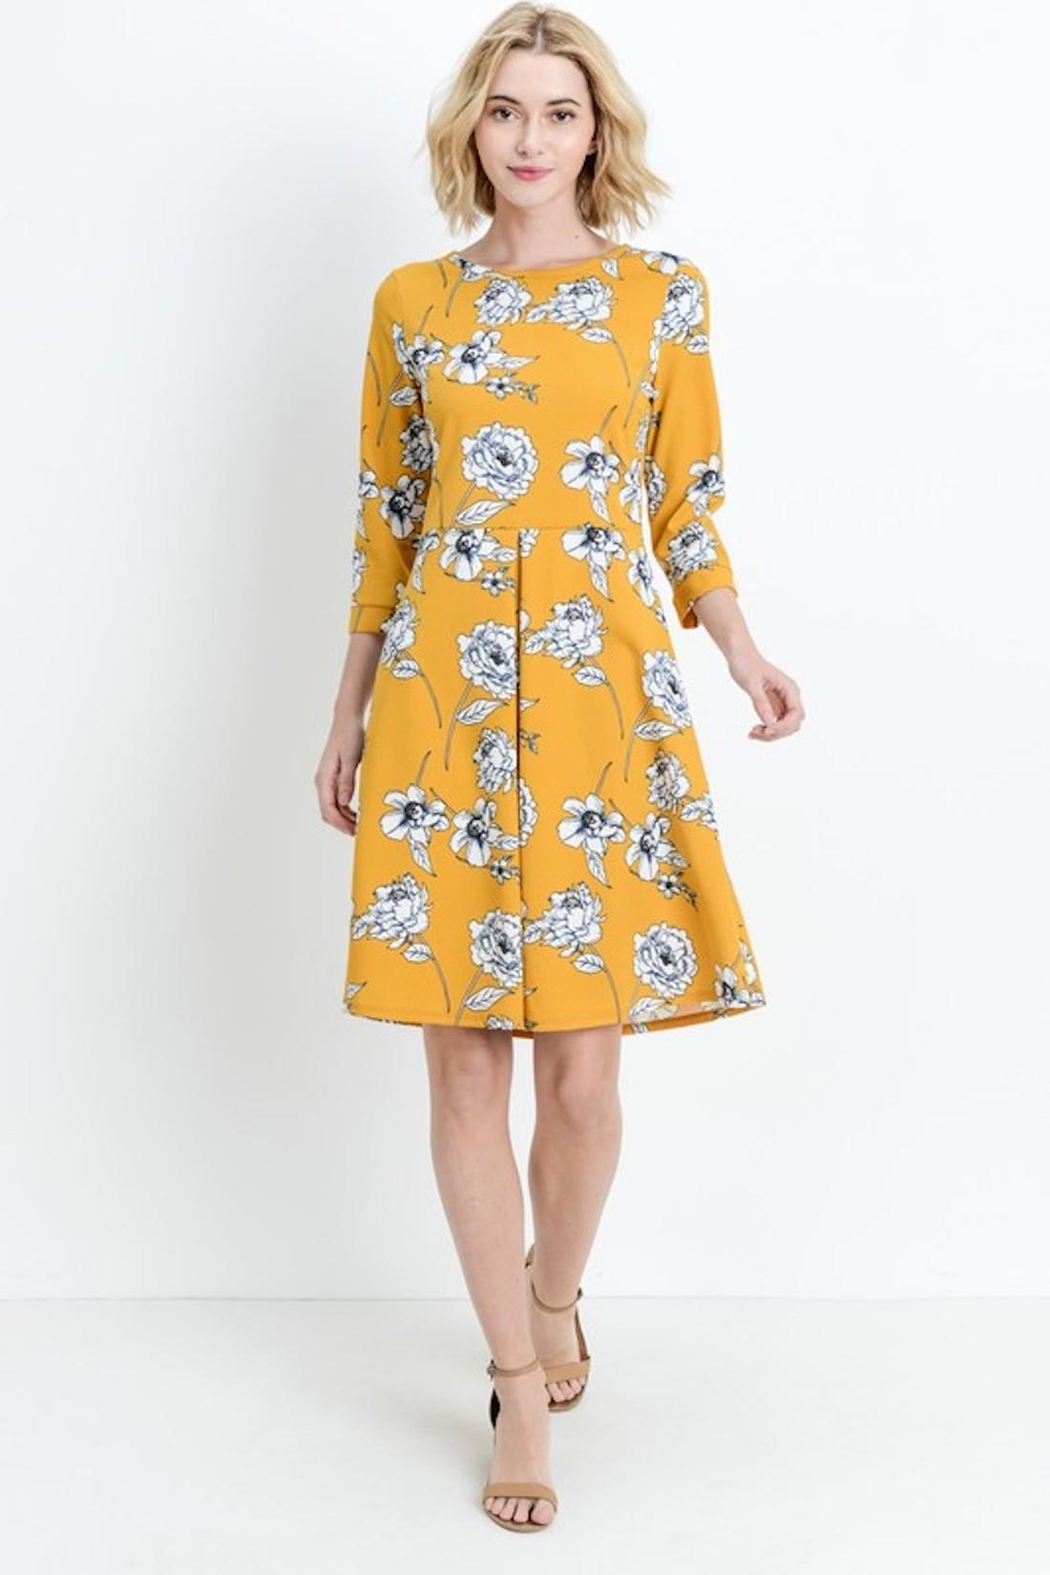 Les Amis Gorgeous Mustard-Floral Dress - Front Full Image